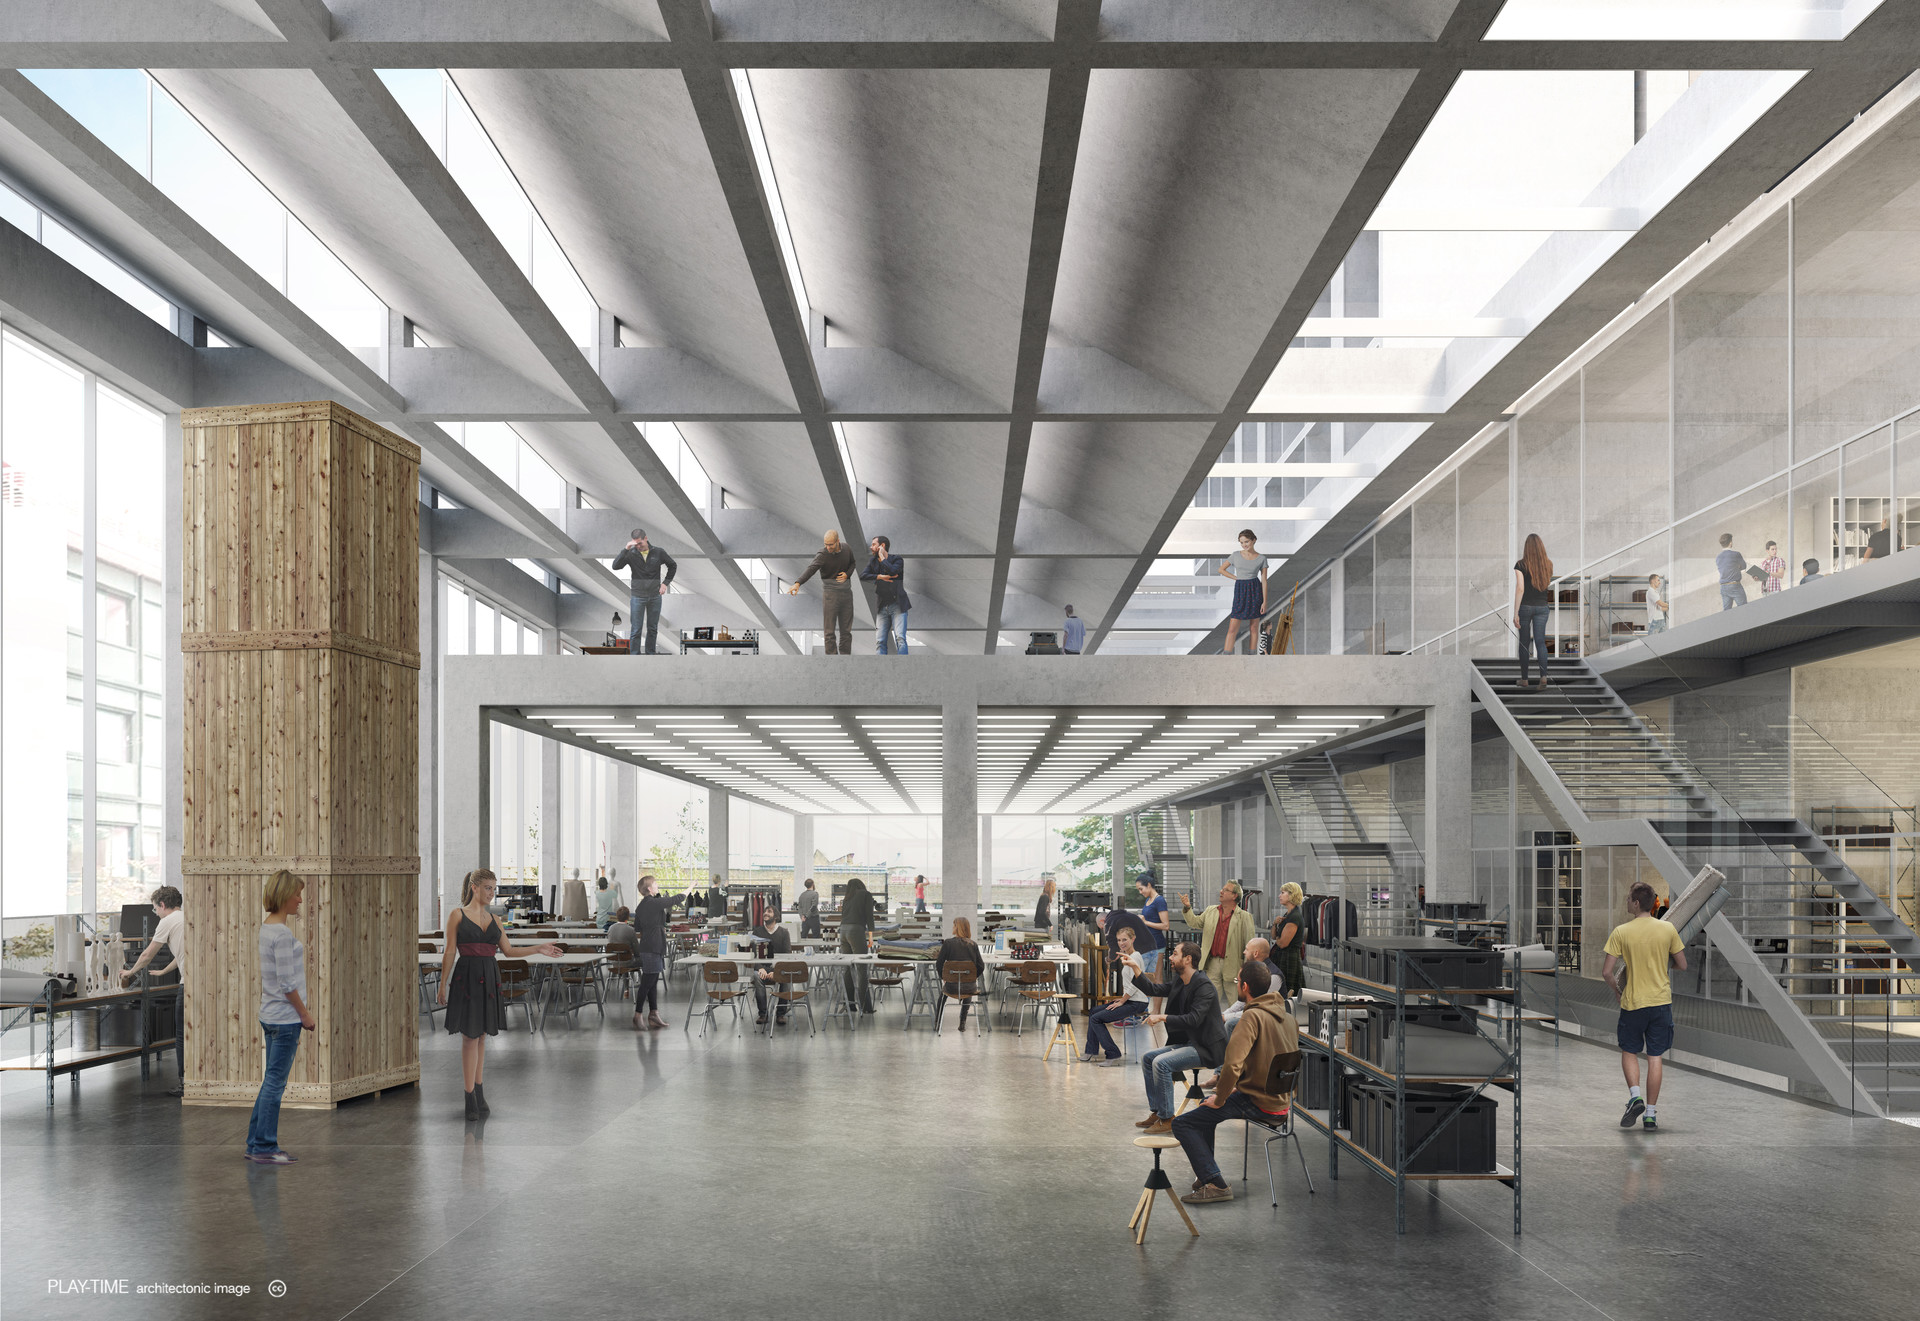 Play time architectonic image serie architects rca battersea south campus 02